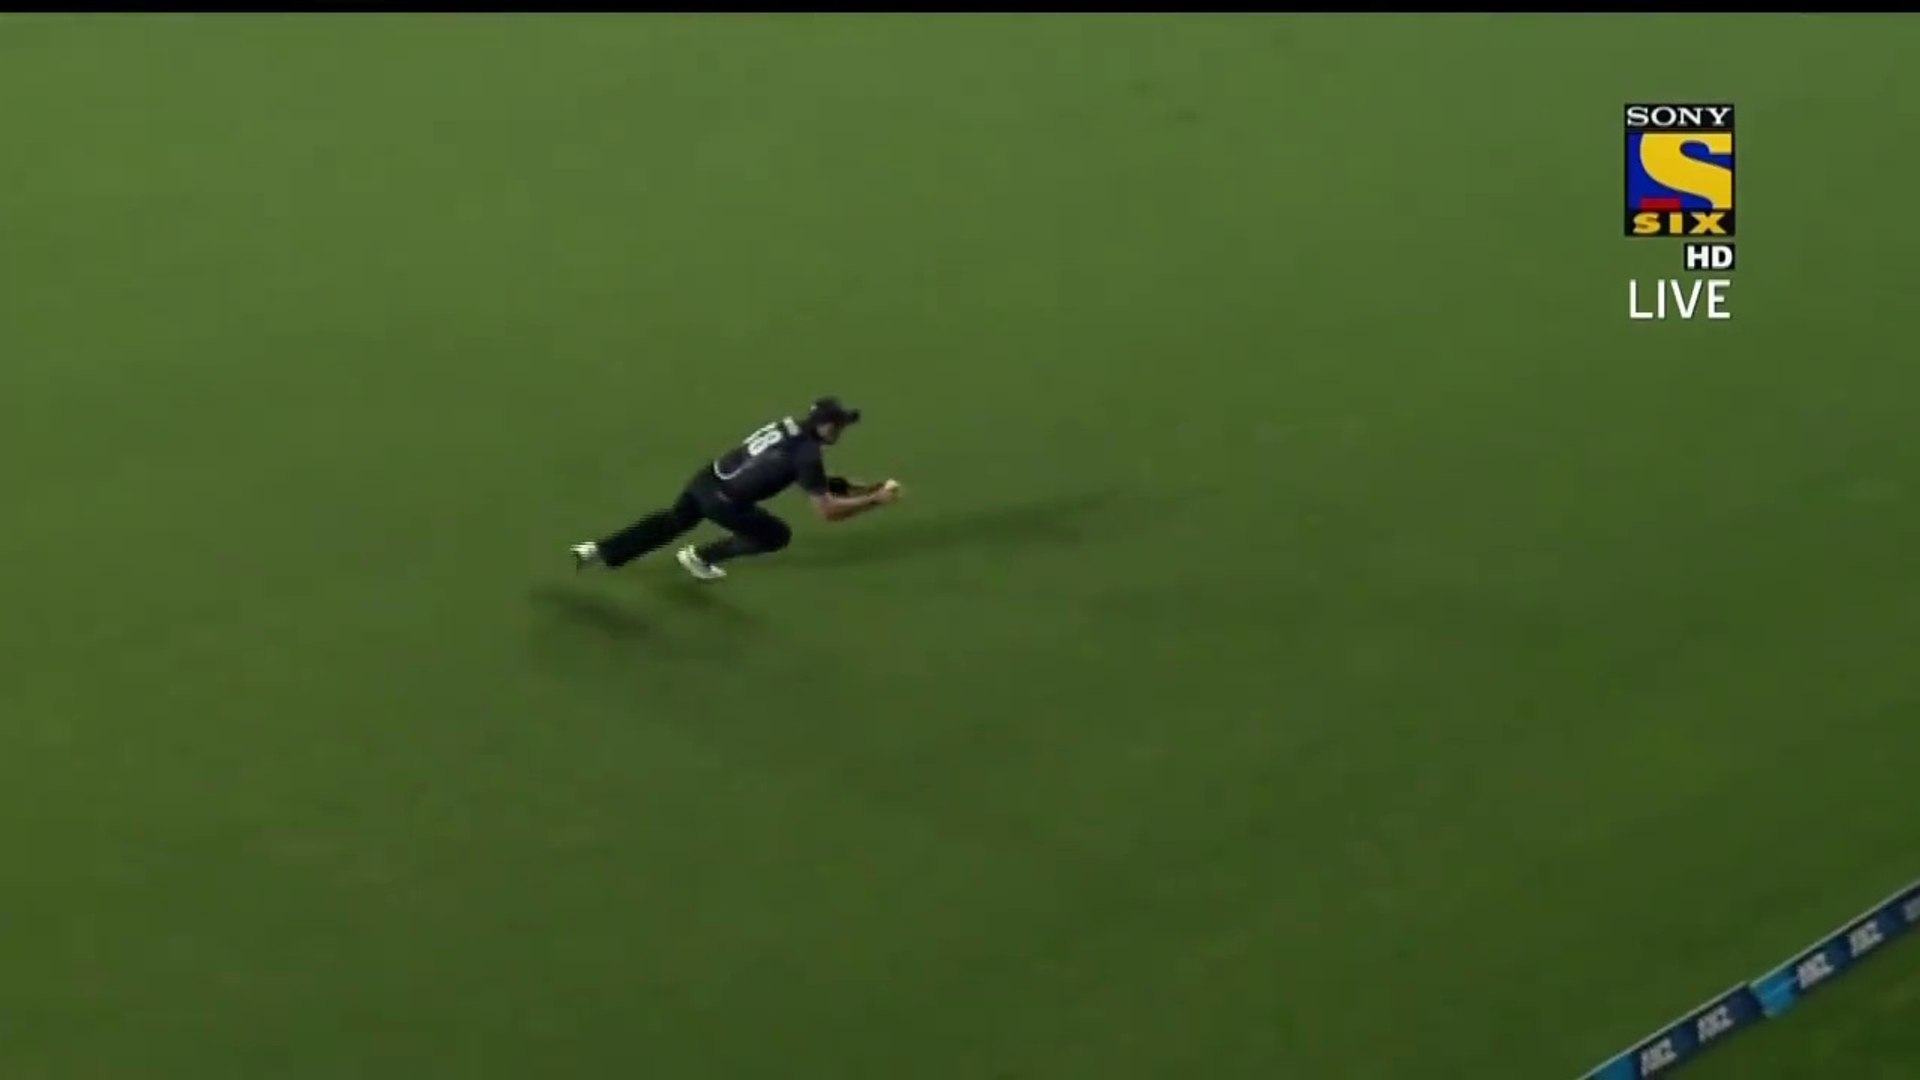 This fielder can catch bullet hits like this   Great catch